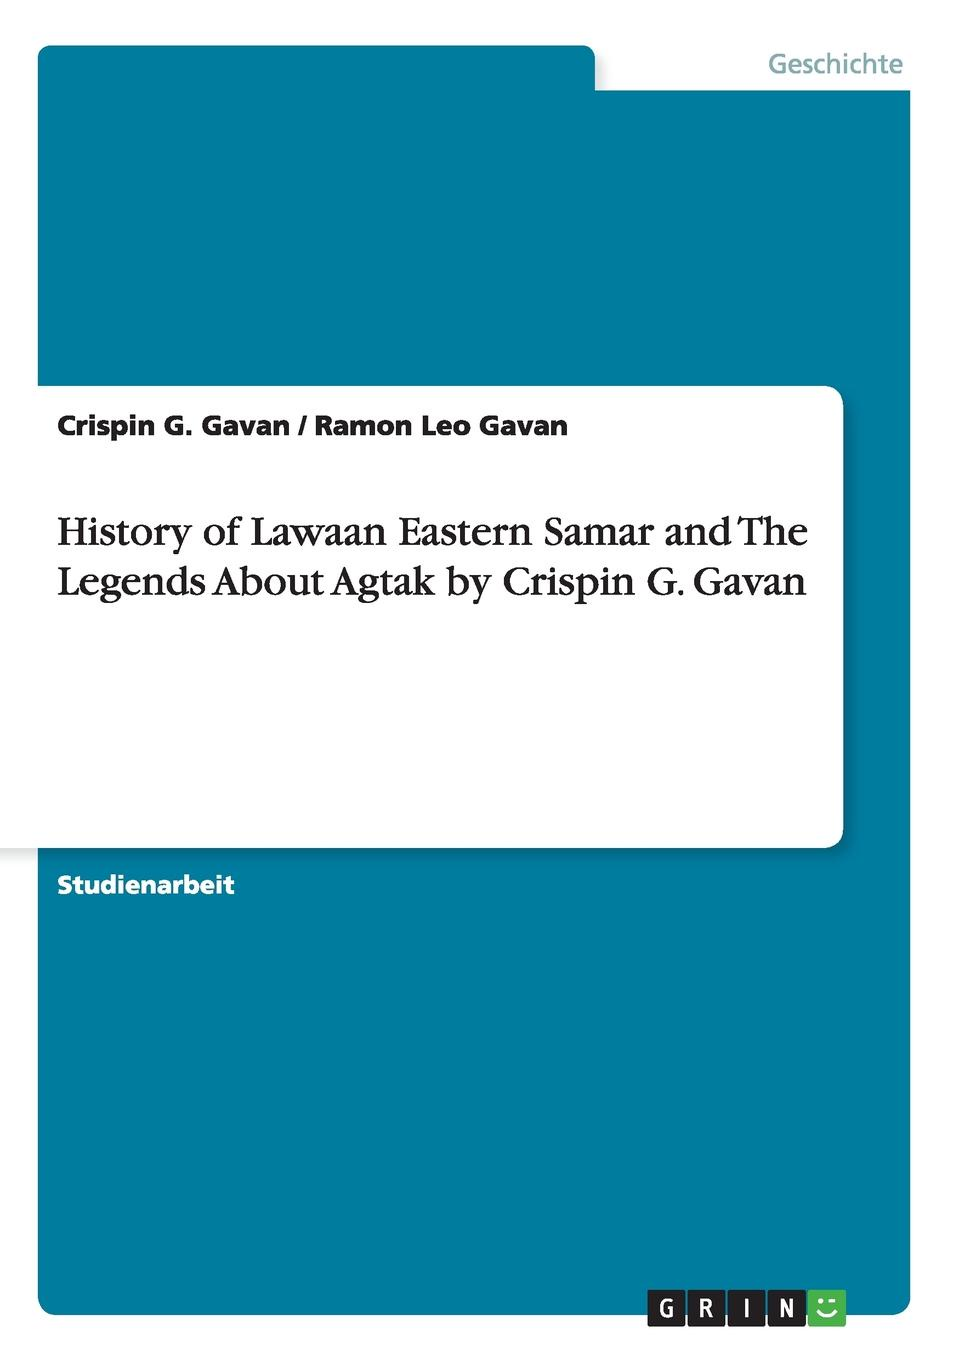 Ramon Leo Gavan, Crispin G. Gavan History of Lawaan Eastern Samar and The Legends About Agtak by Crispin G. Gavan цена